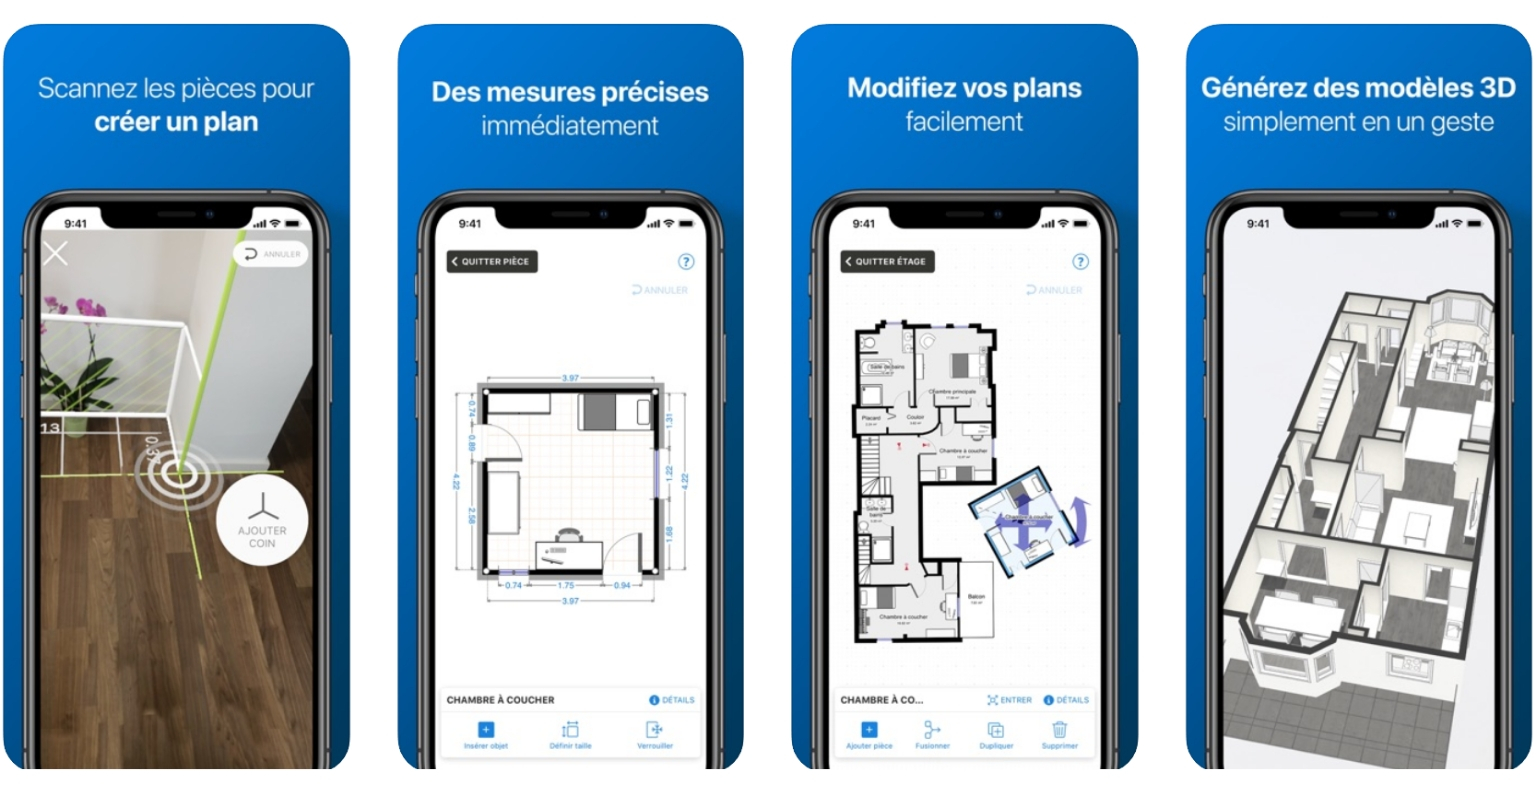 Meilleures applications pour Architectes - magicplan